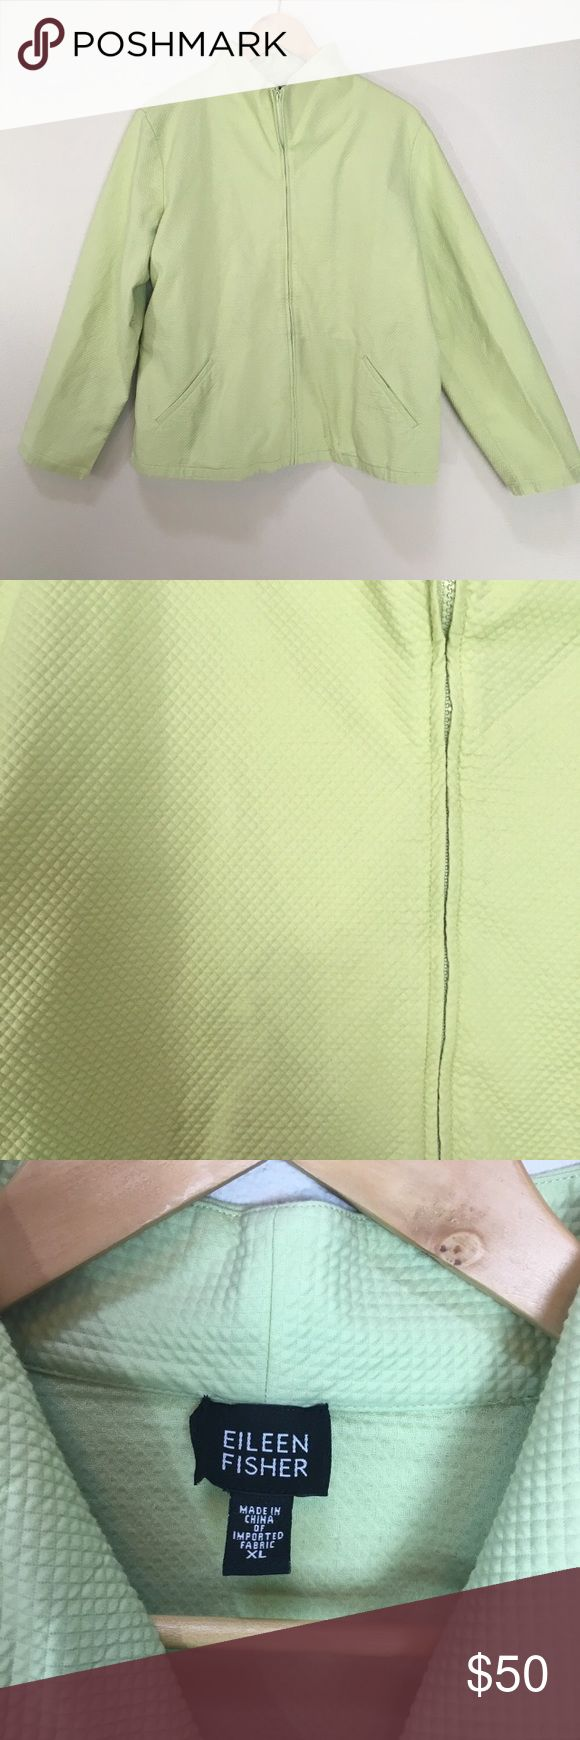 "EILEEN FISHER Quilted Light Green Zip Up Jacket XL EILEEN FISHER Quilted Light Green Zip Up Jacket Cotton Blend Women's Size XL. Excellent condition! Light weight jacket. Green is like a pistachio green. Clean and comes from smoke free home. Questions welcomed. Approx. measurements: Armpit to armpit: 22.75"" across Length: 24.75"" Eileen Fisher Jackets & Coats"